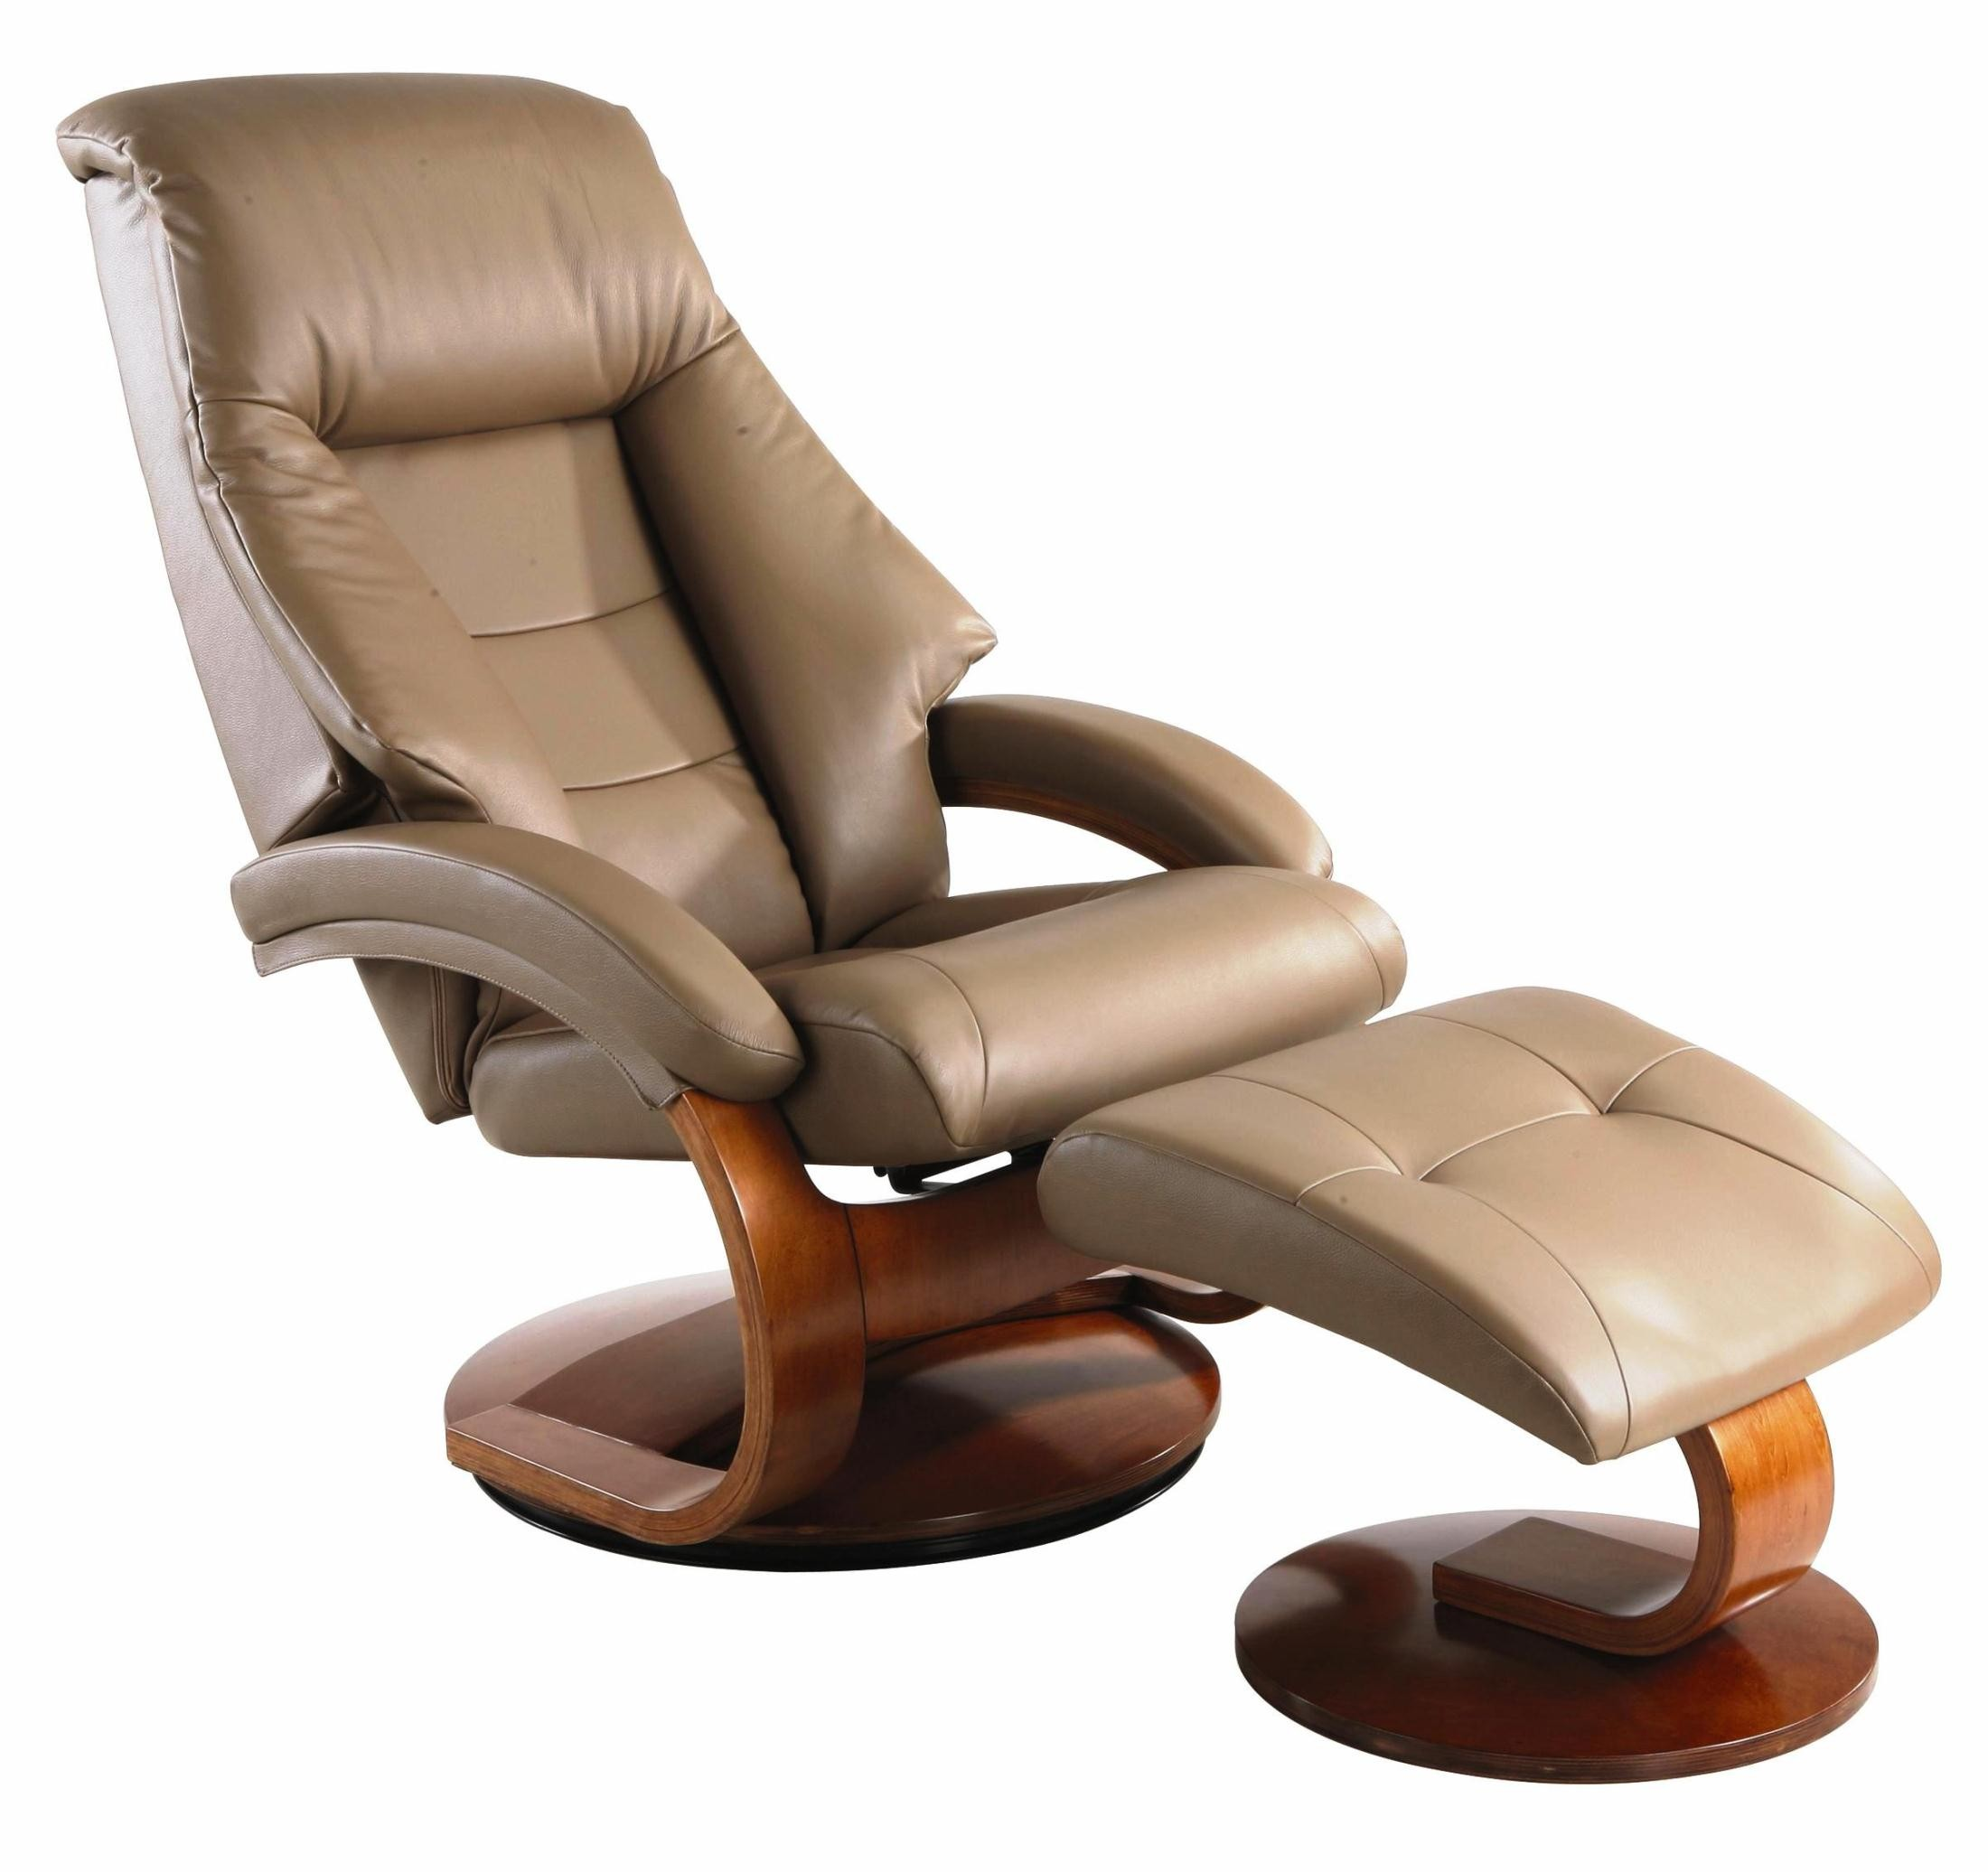 leather swivel recliner chair and ottoman wing oslo sand tan top grain from mac